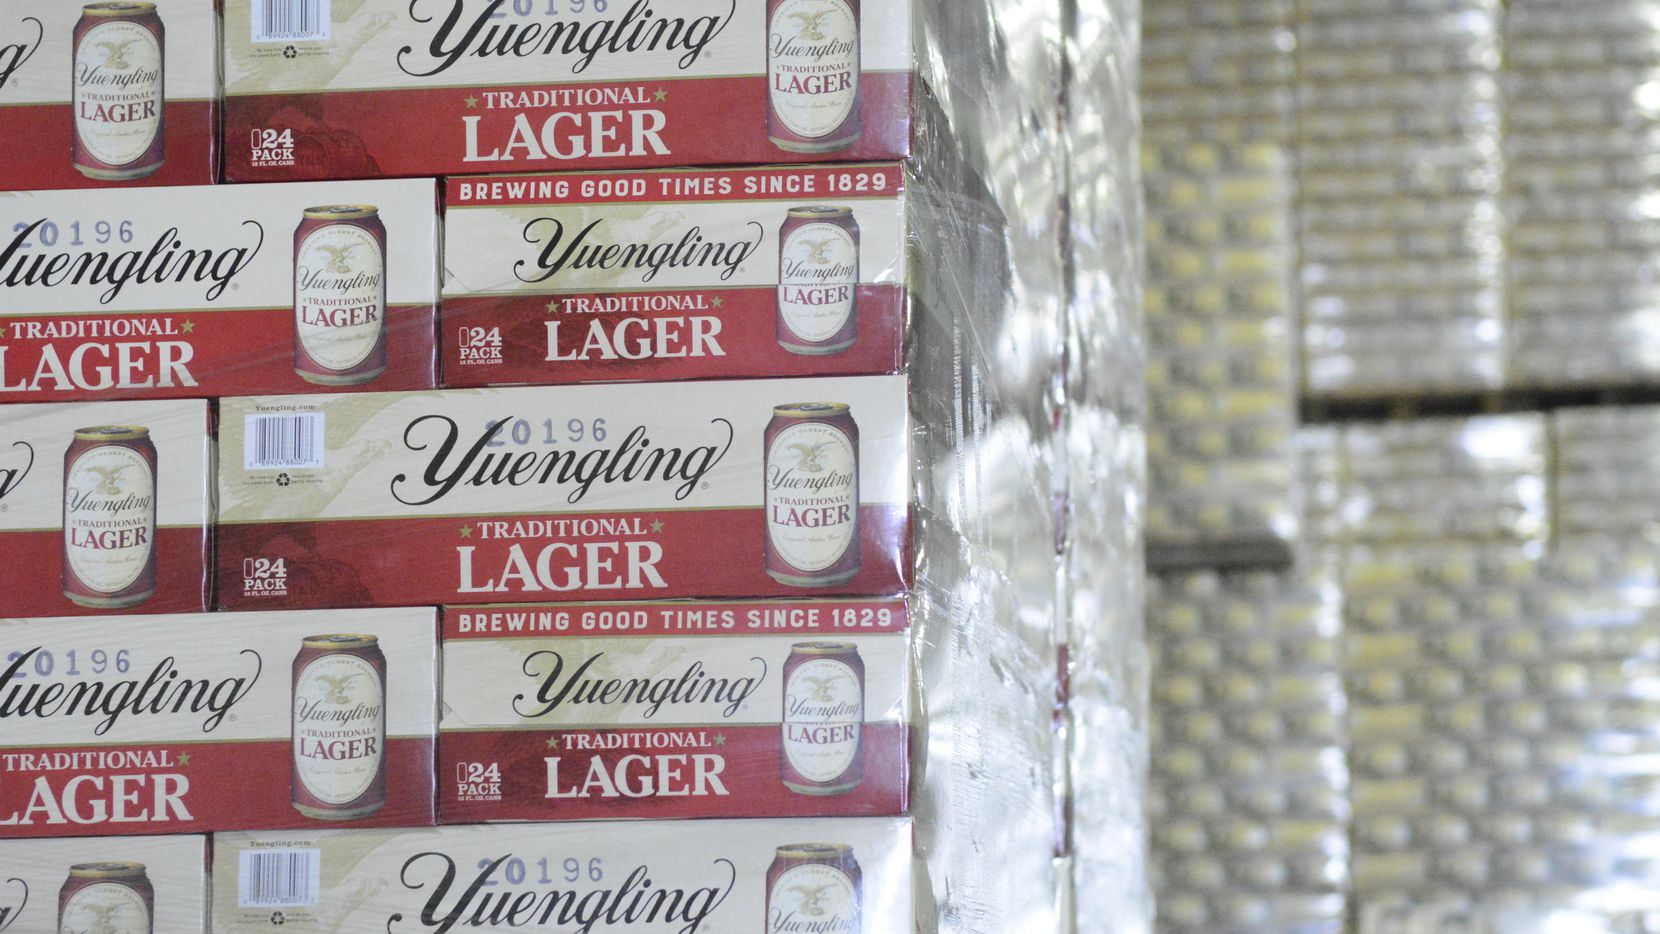 Yuengling Traditional Lager, a popular beer especially in the eastern part on the United States, will become more accessible in 2021. If you're new to Yuengling, here's the first thing to know: It's pronounced YING-ling.